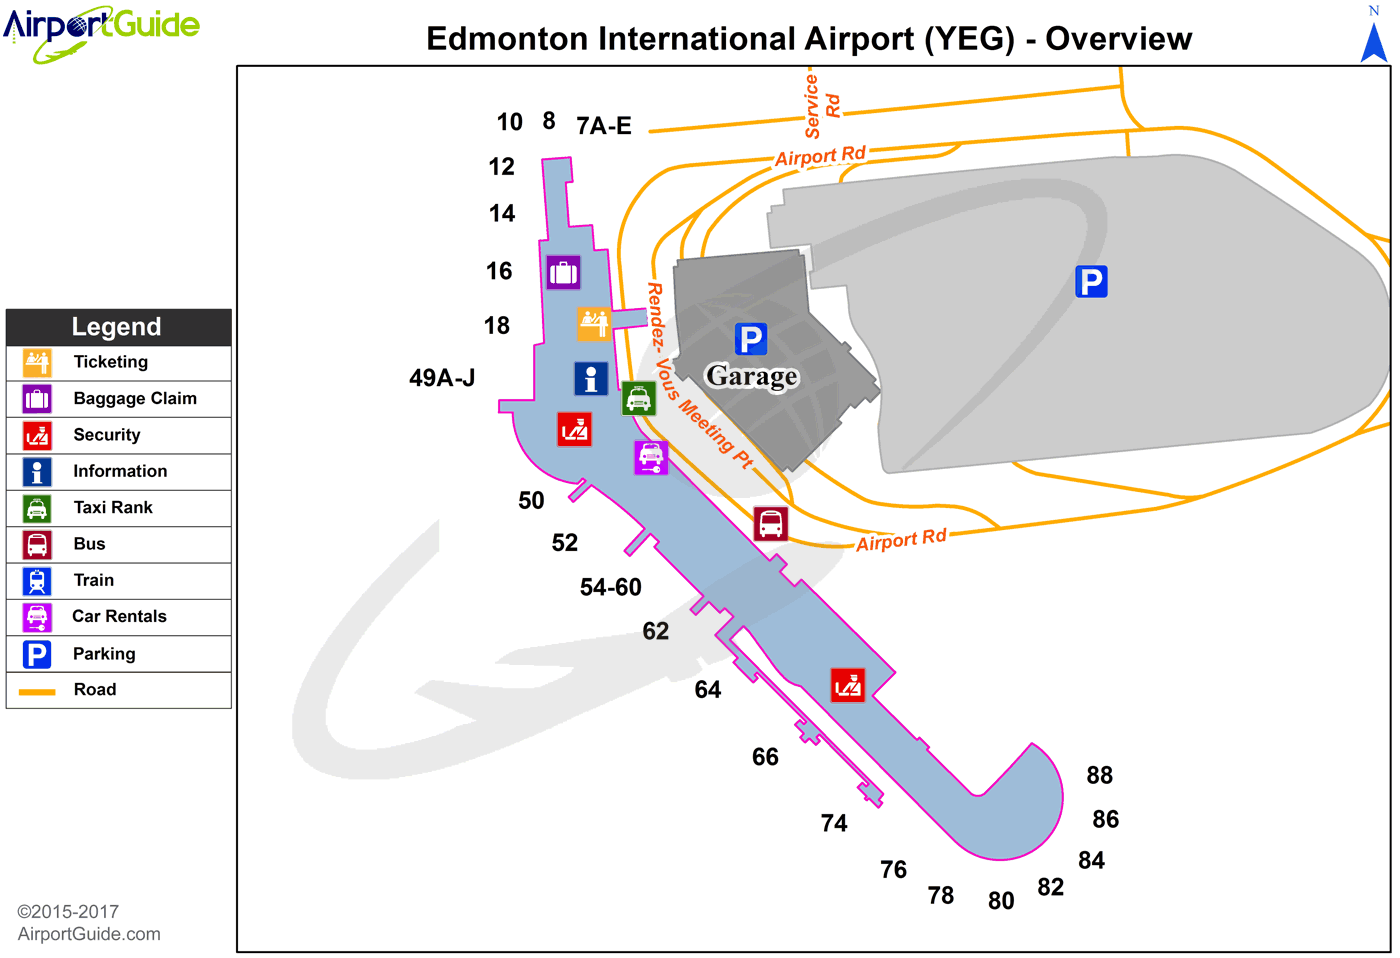 Edmonton - Edmonton International Airport (YEG) Airport Terminal Map - Overview